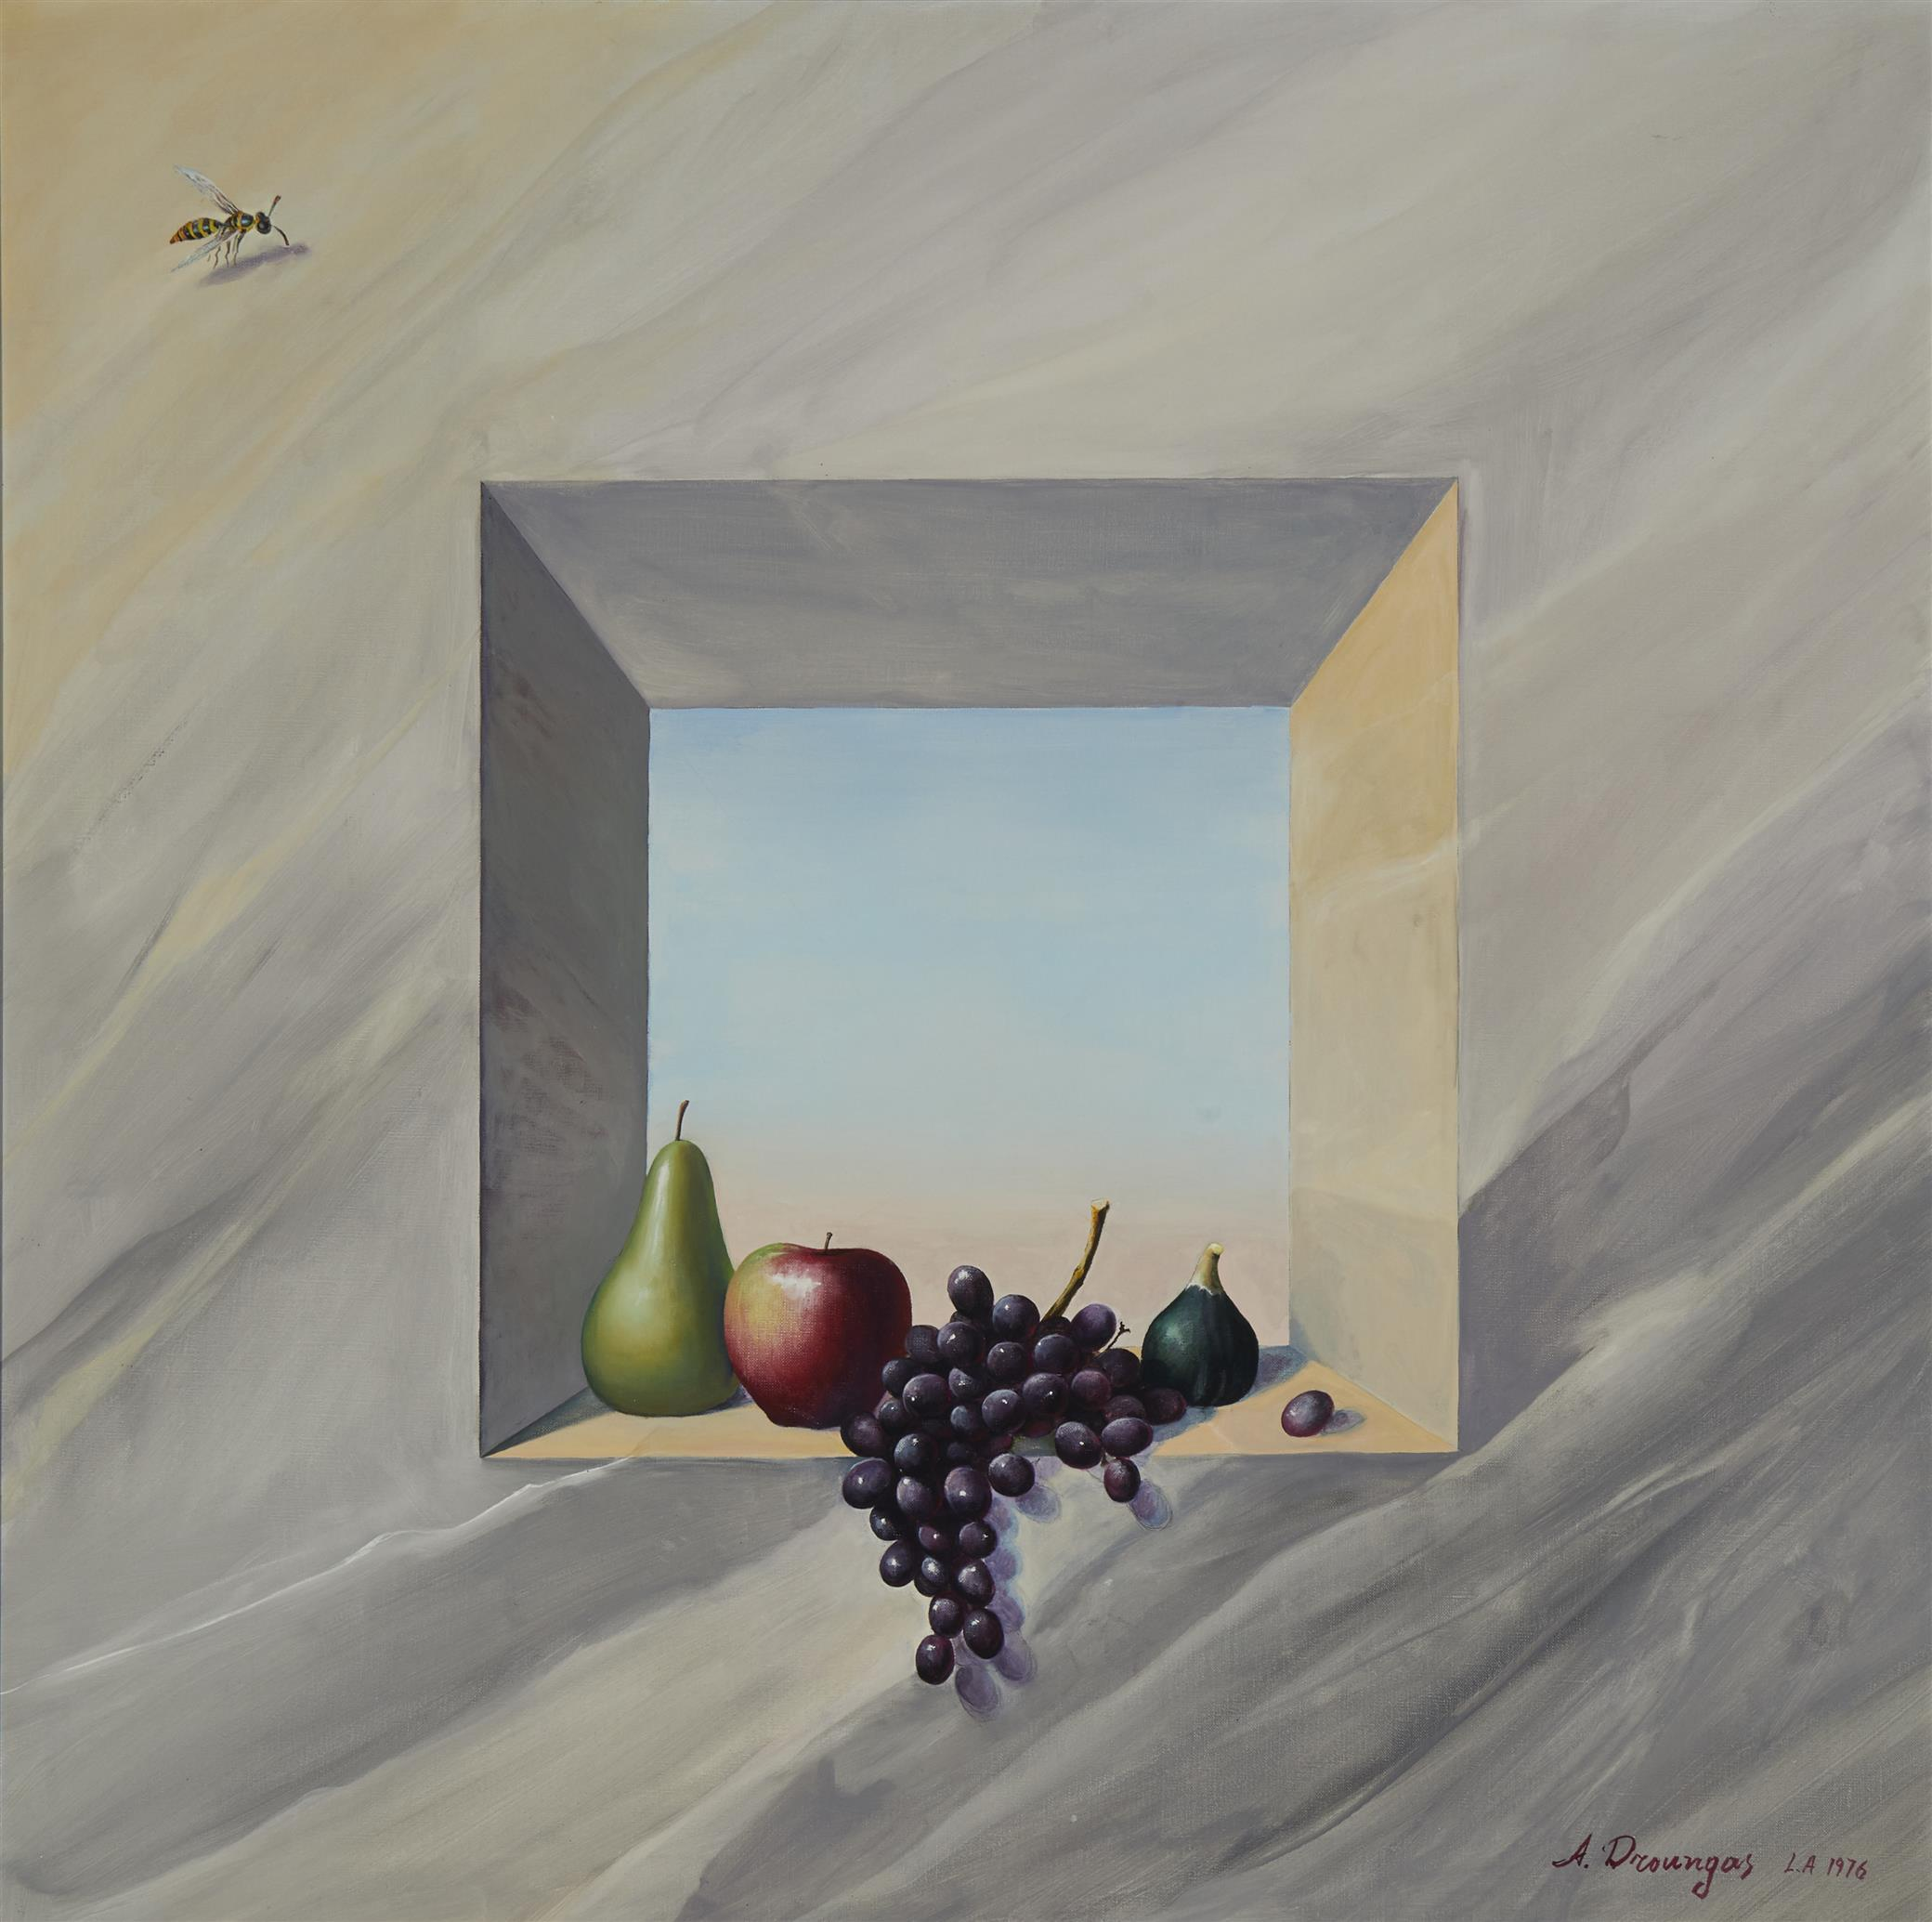 """Achilleas Droungas, (b. 1940, Greek), Realistic still life with fruit in a window, 1976, Oil on canvas, 34"""" H x 34"""" W"""